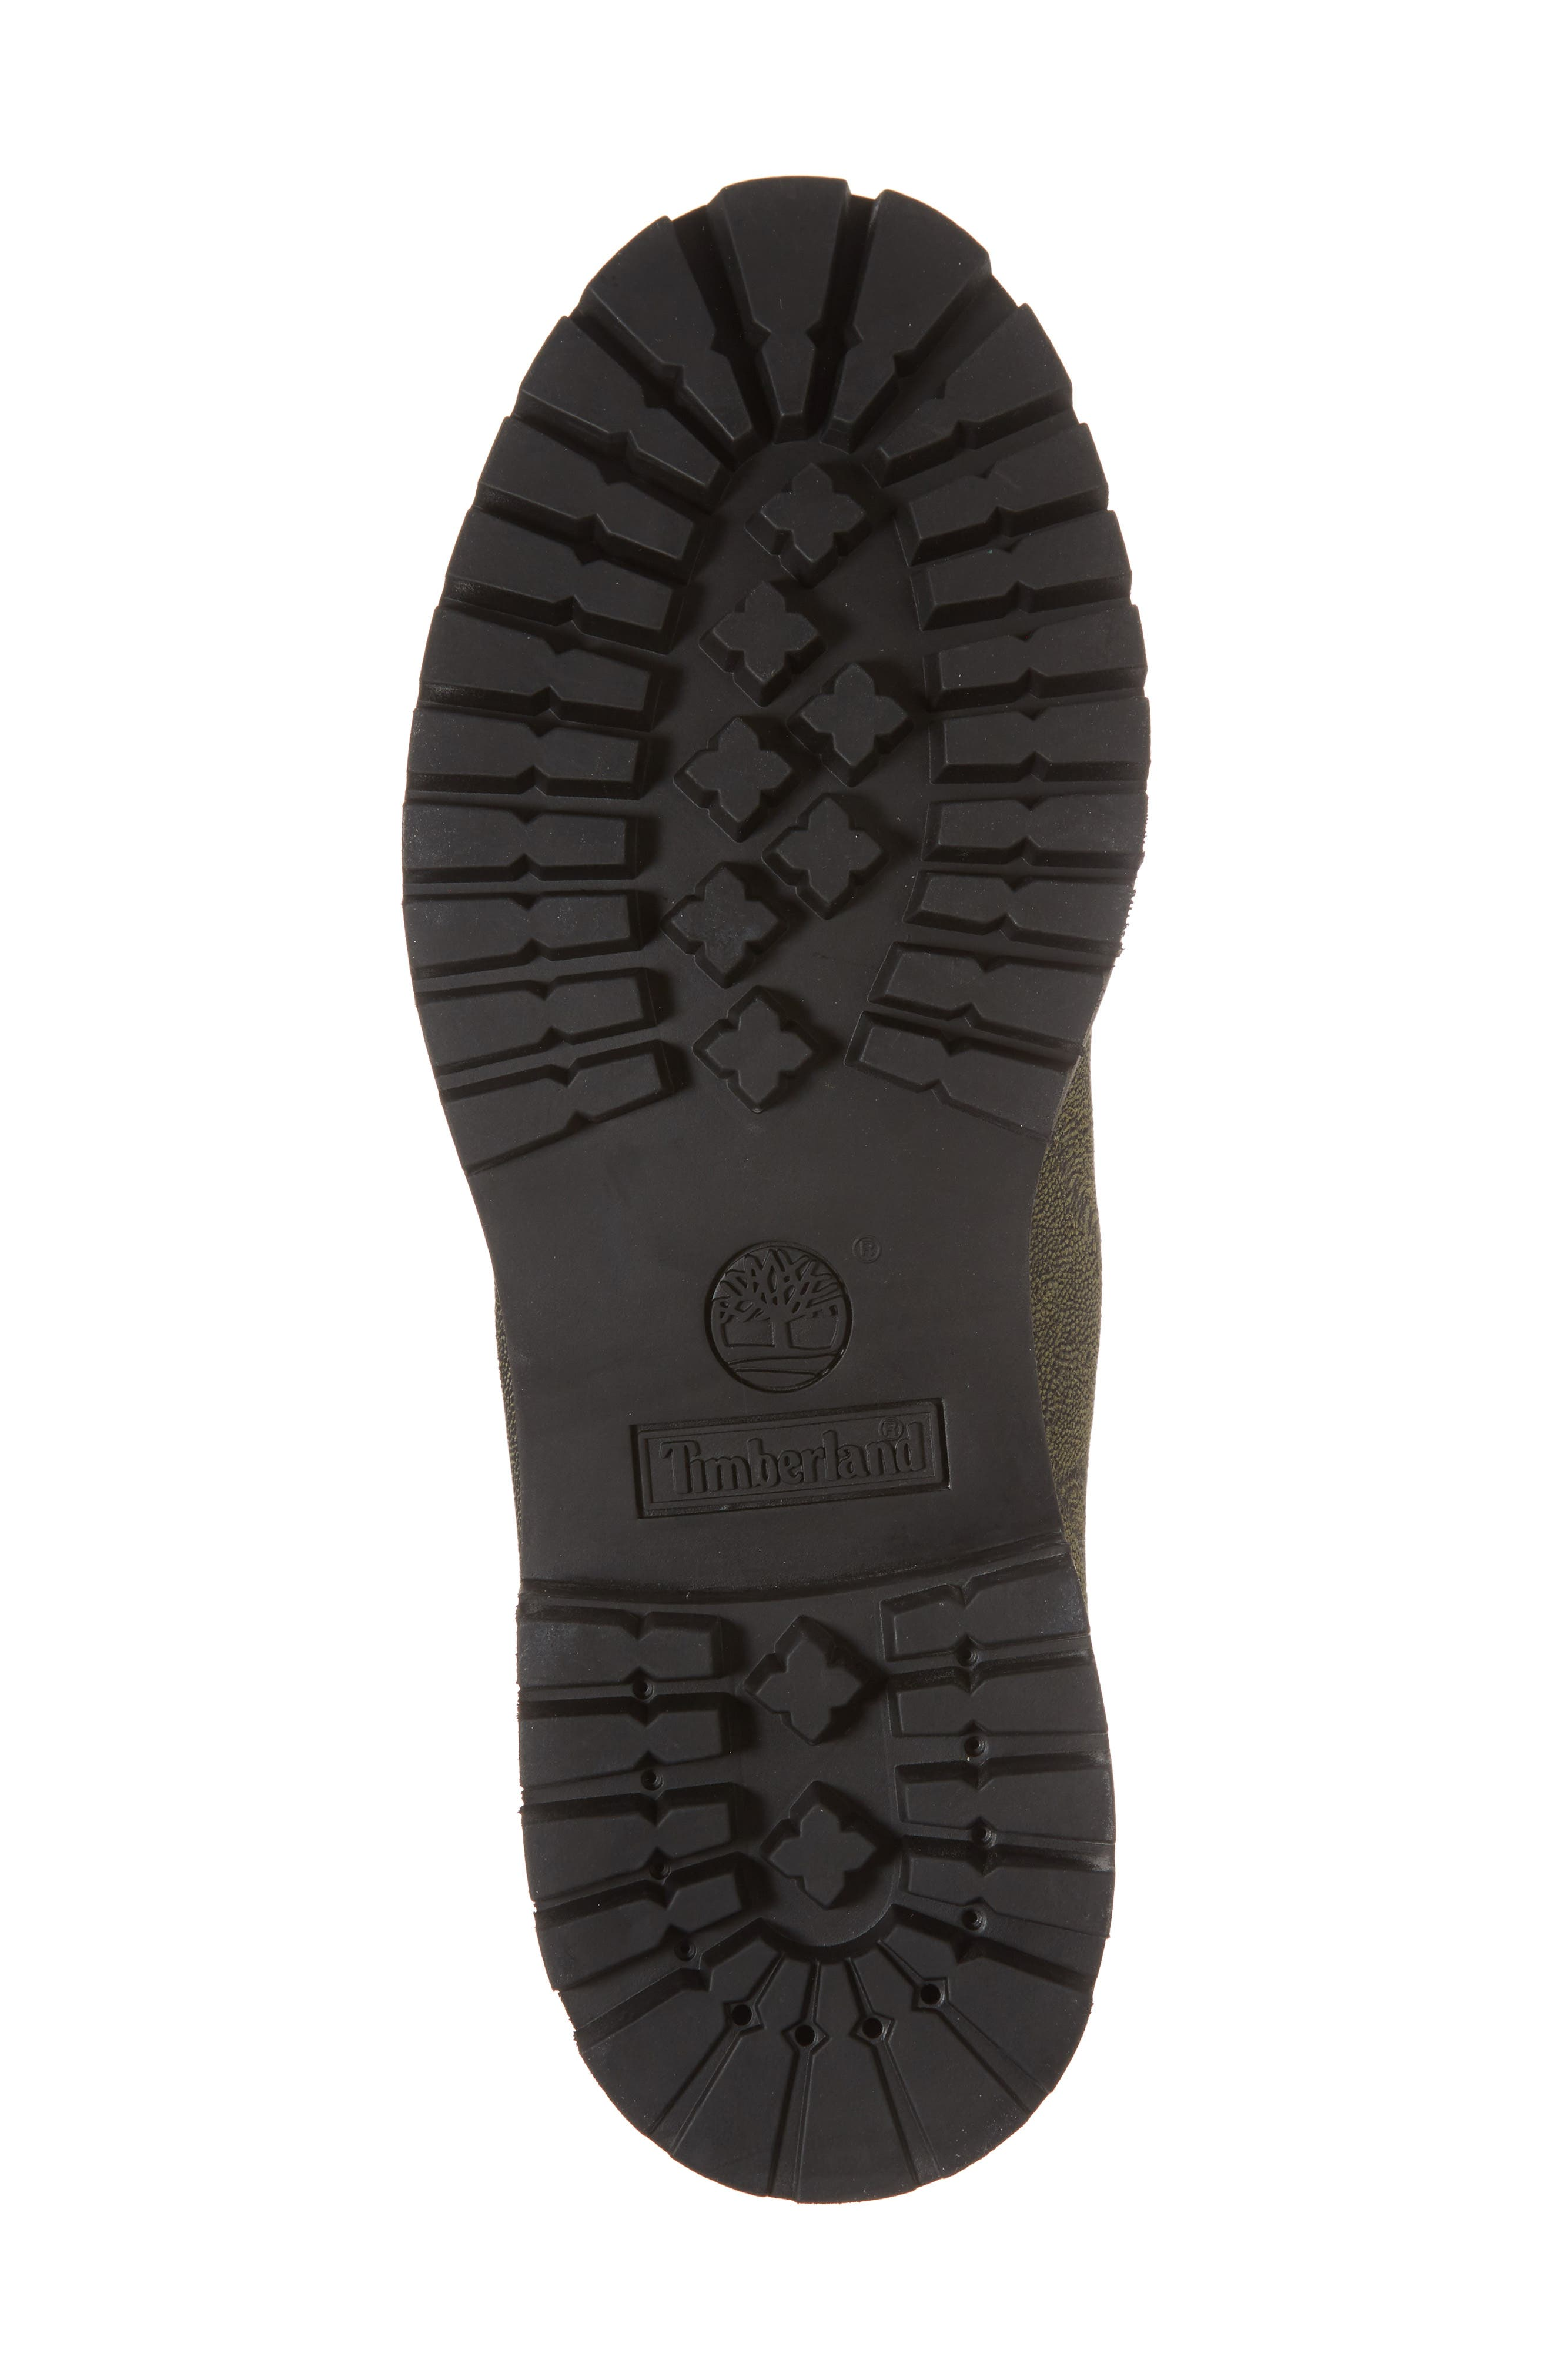 Premium Mammoth Waterproof PrimaLoft<sup>®</sup> Insulated Boot,                             Alternate thumbnail 6, color,                             Black/ Helcor